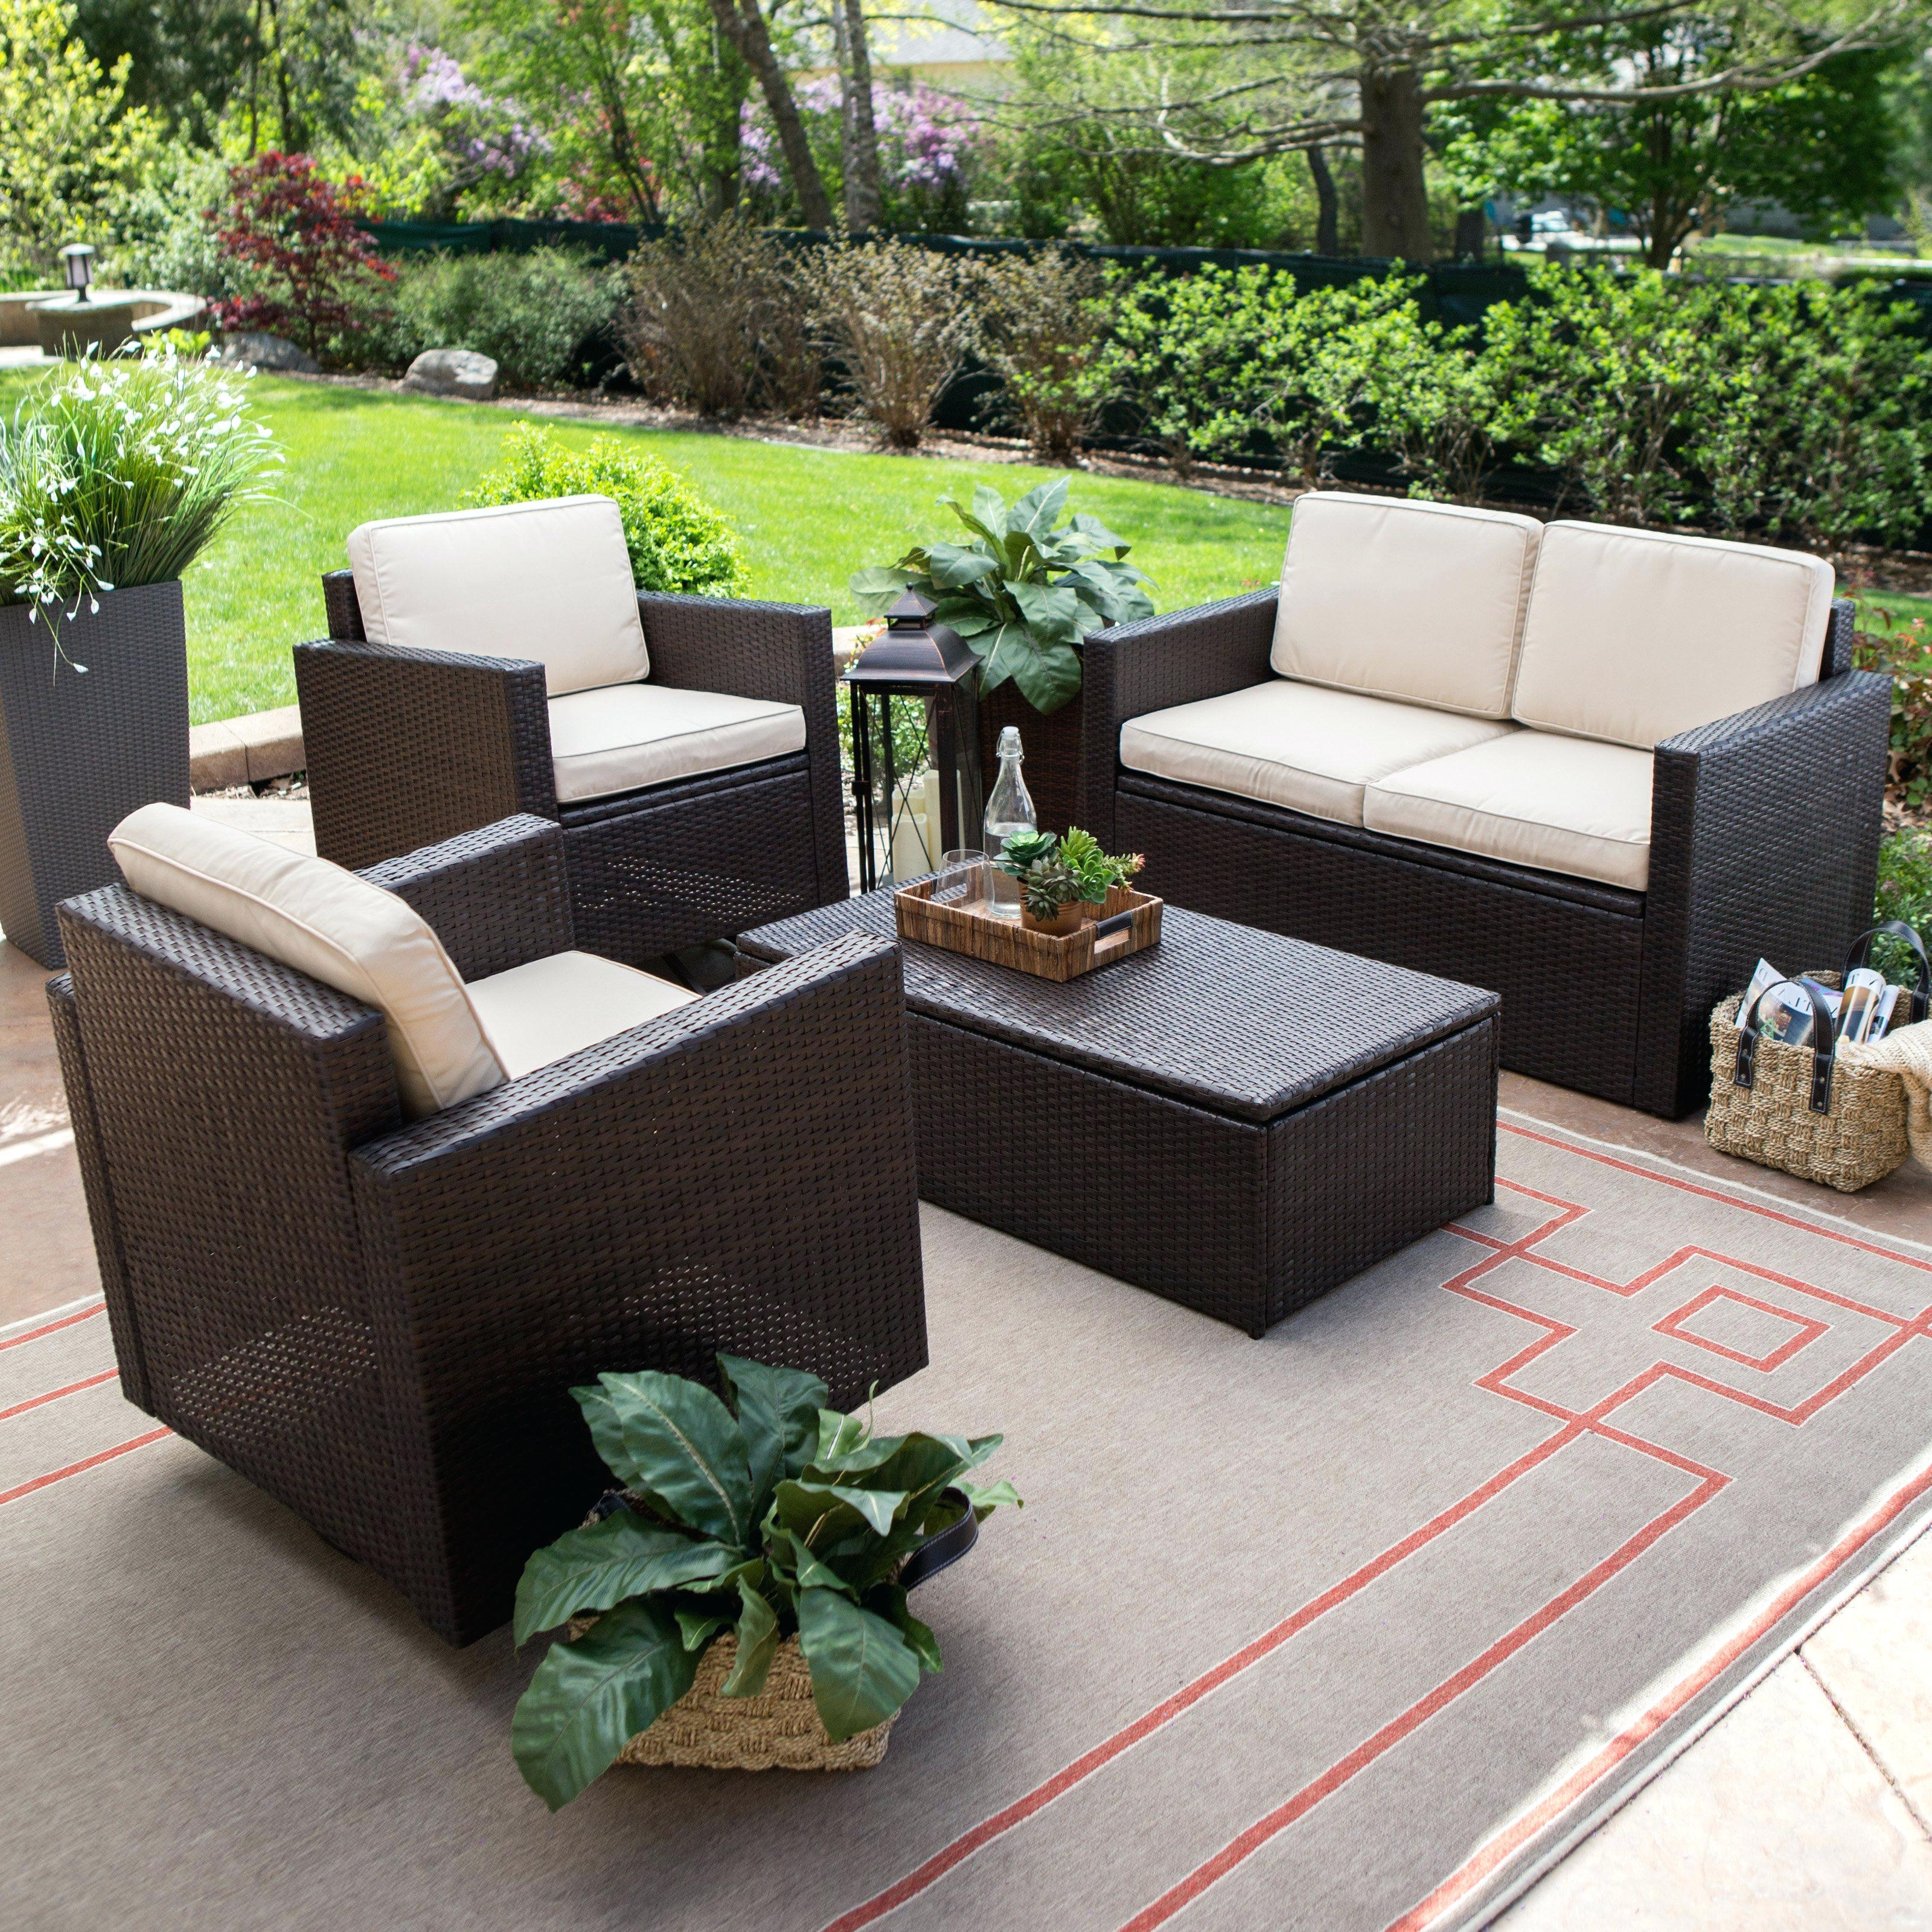 2019 Patio Conversation Sets Coral Coast Wicker 4 Piece Conversation Set In Patio Sectional Conversation Sets (View 1 of 20)